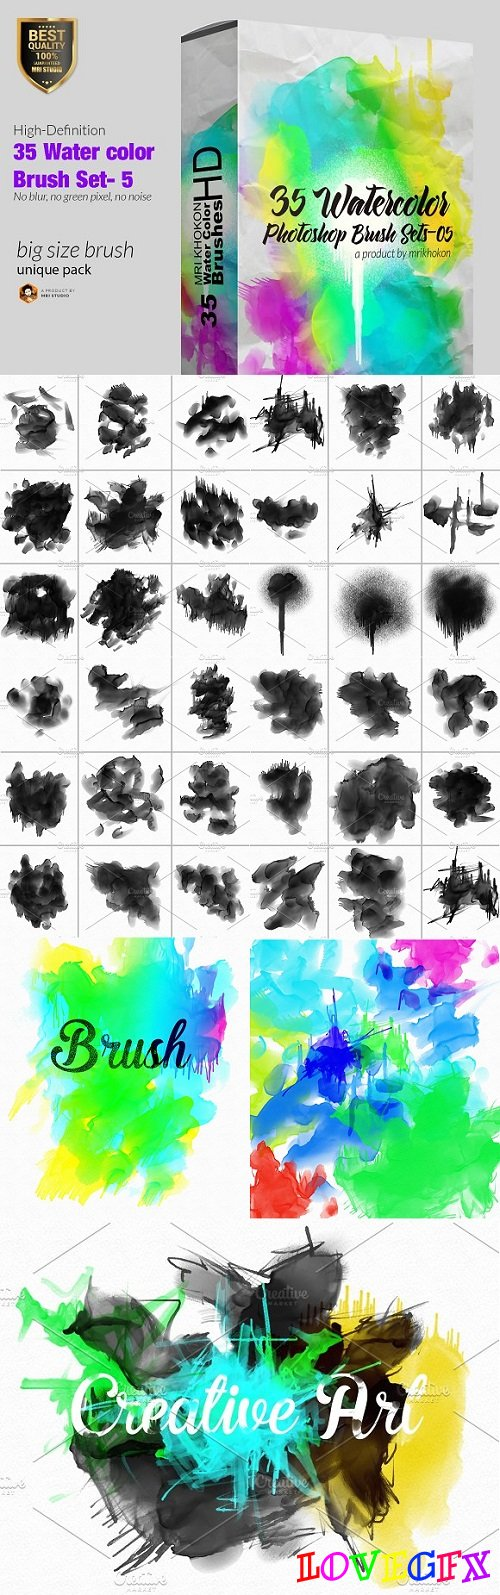 Water color Photoshop Brush Set-5 1514601